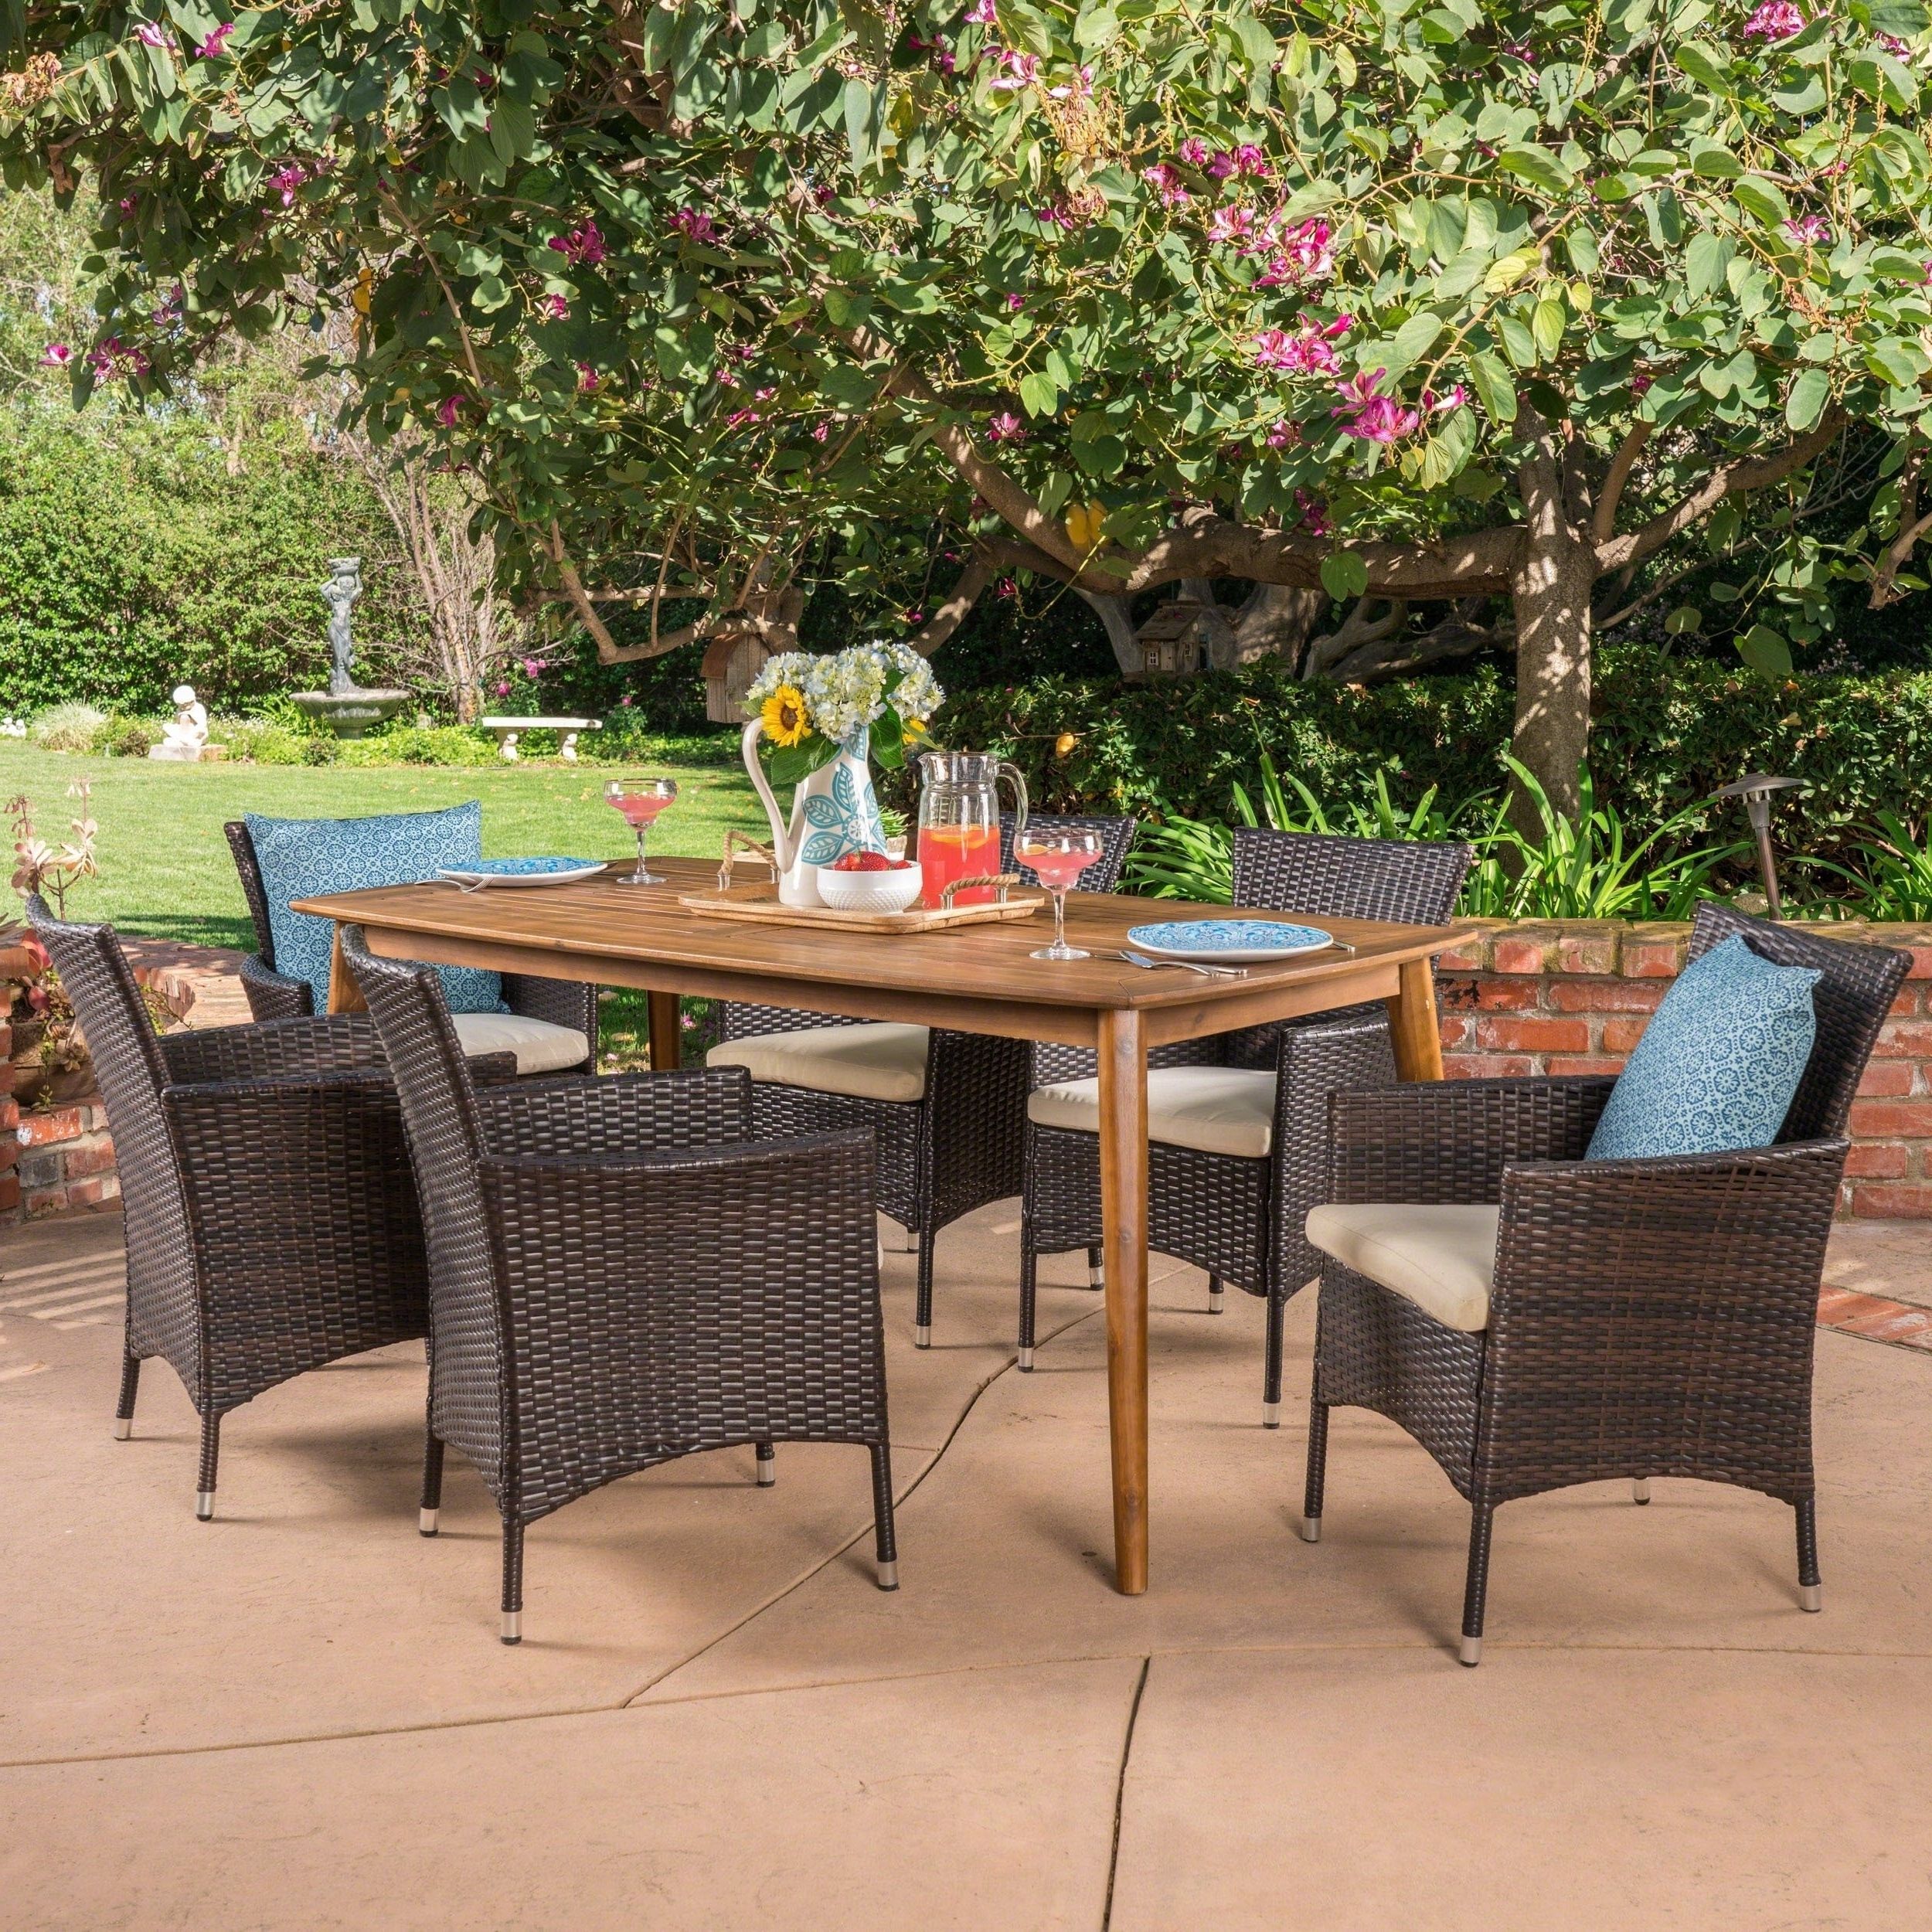 Shop Jaxon Outdoor 7 Piece Multibrown Pe Wicker Dining Set With For Fashionable Jaxon Grey 7 Piece Rectangle Extension Dining Sets With Uph Chairs (View 8 of 25)